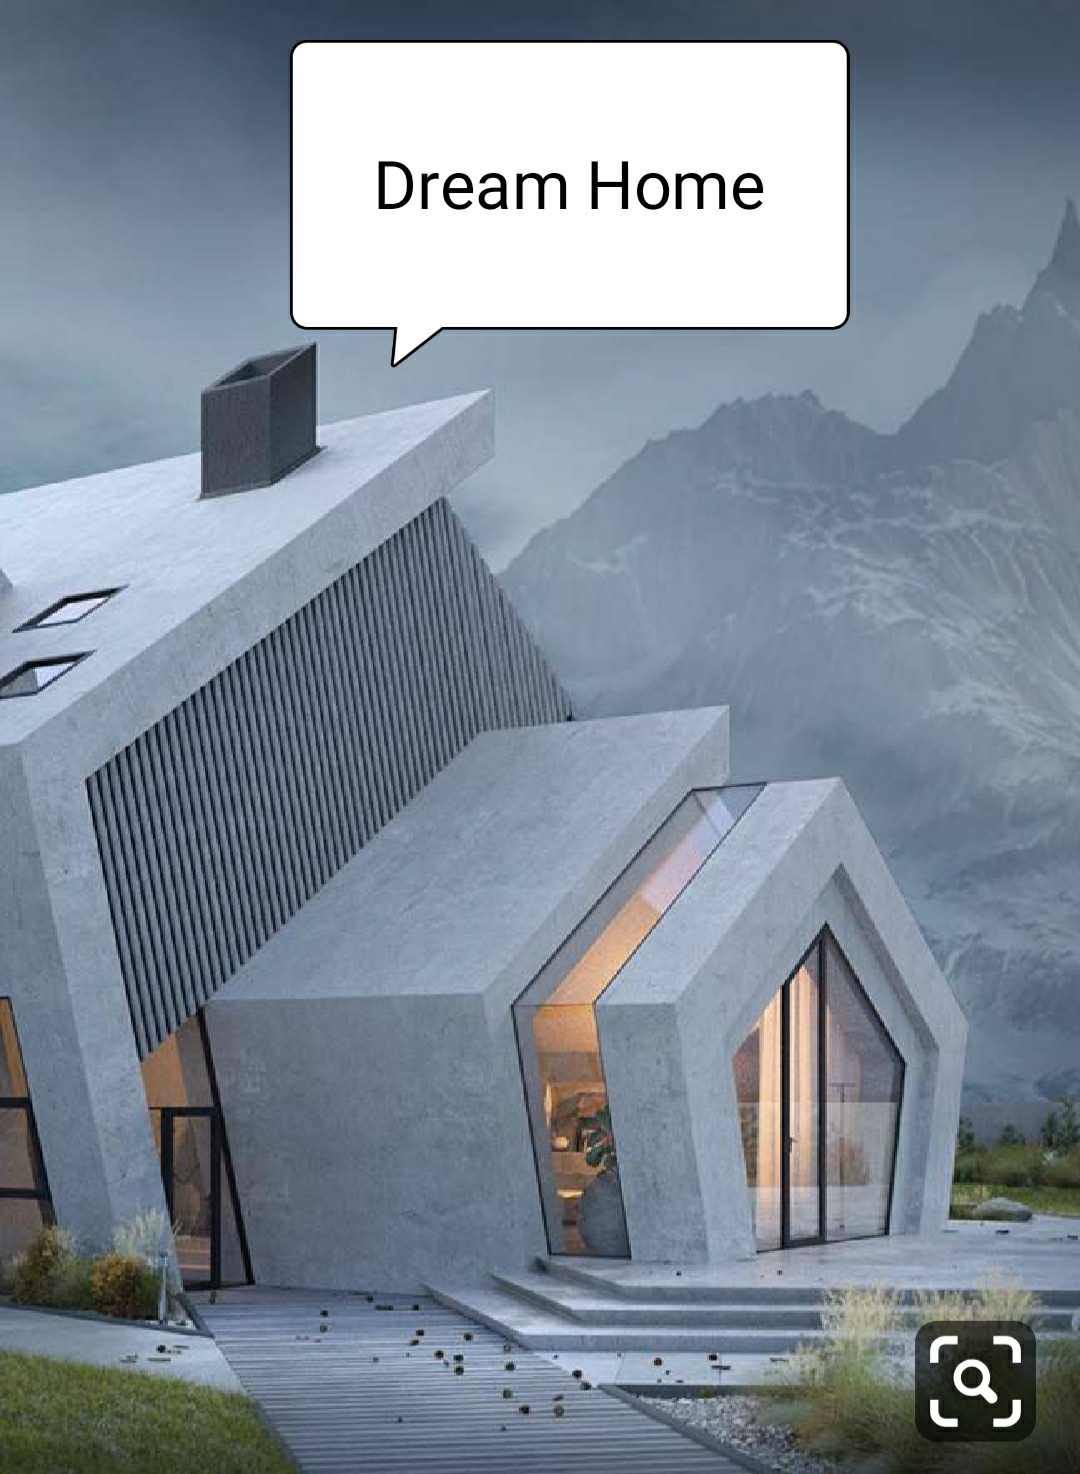 How to build a good house? Some important things before building a house.